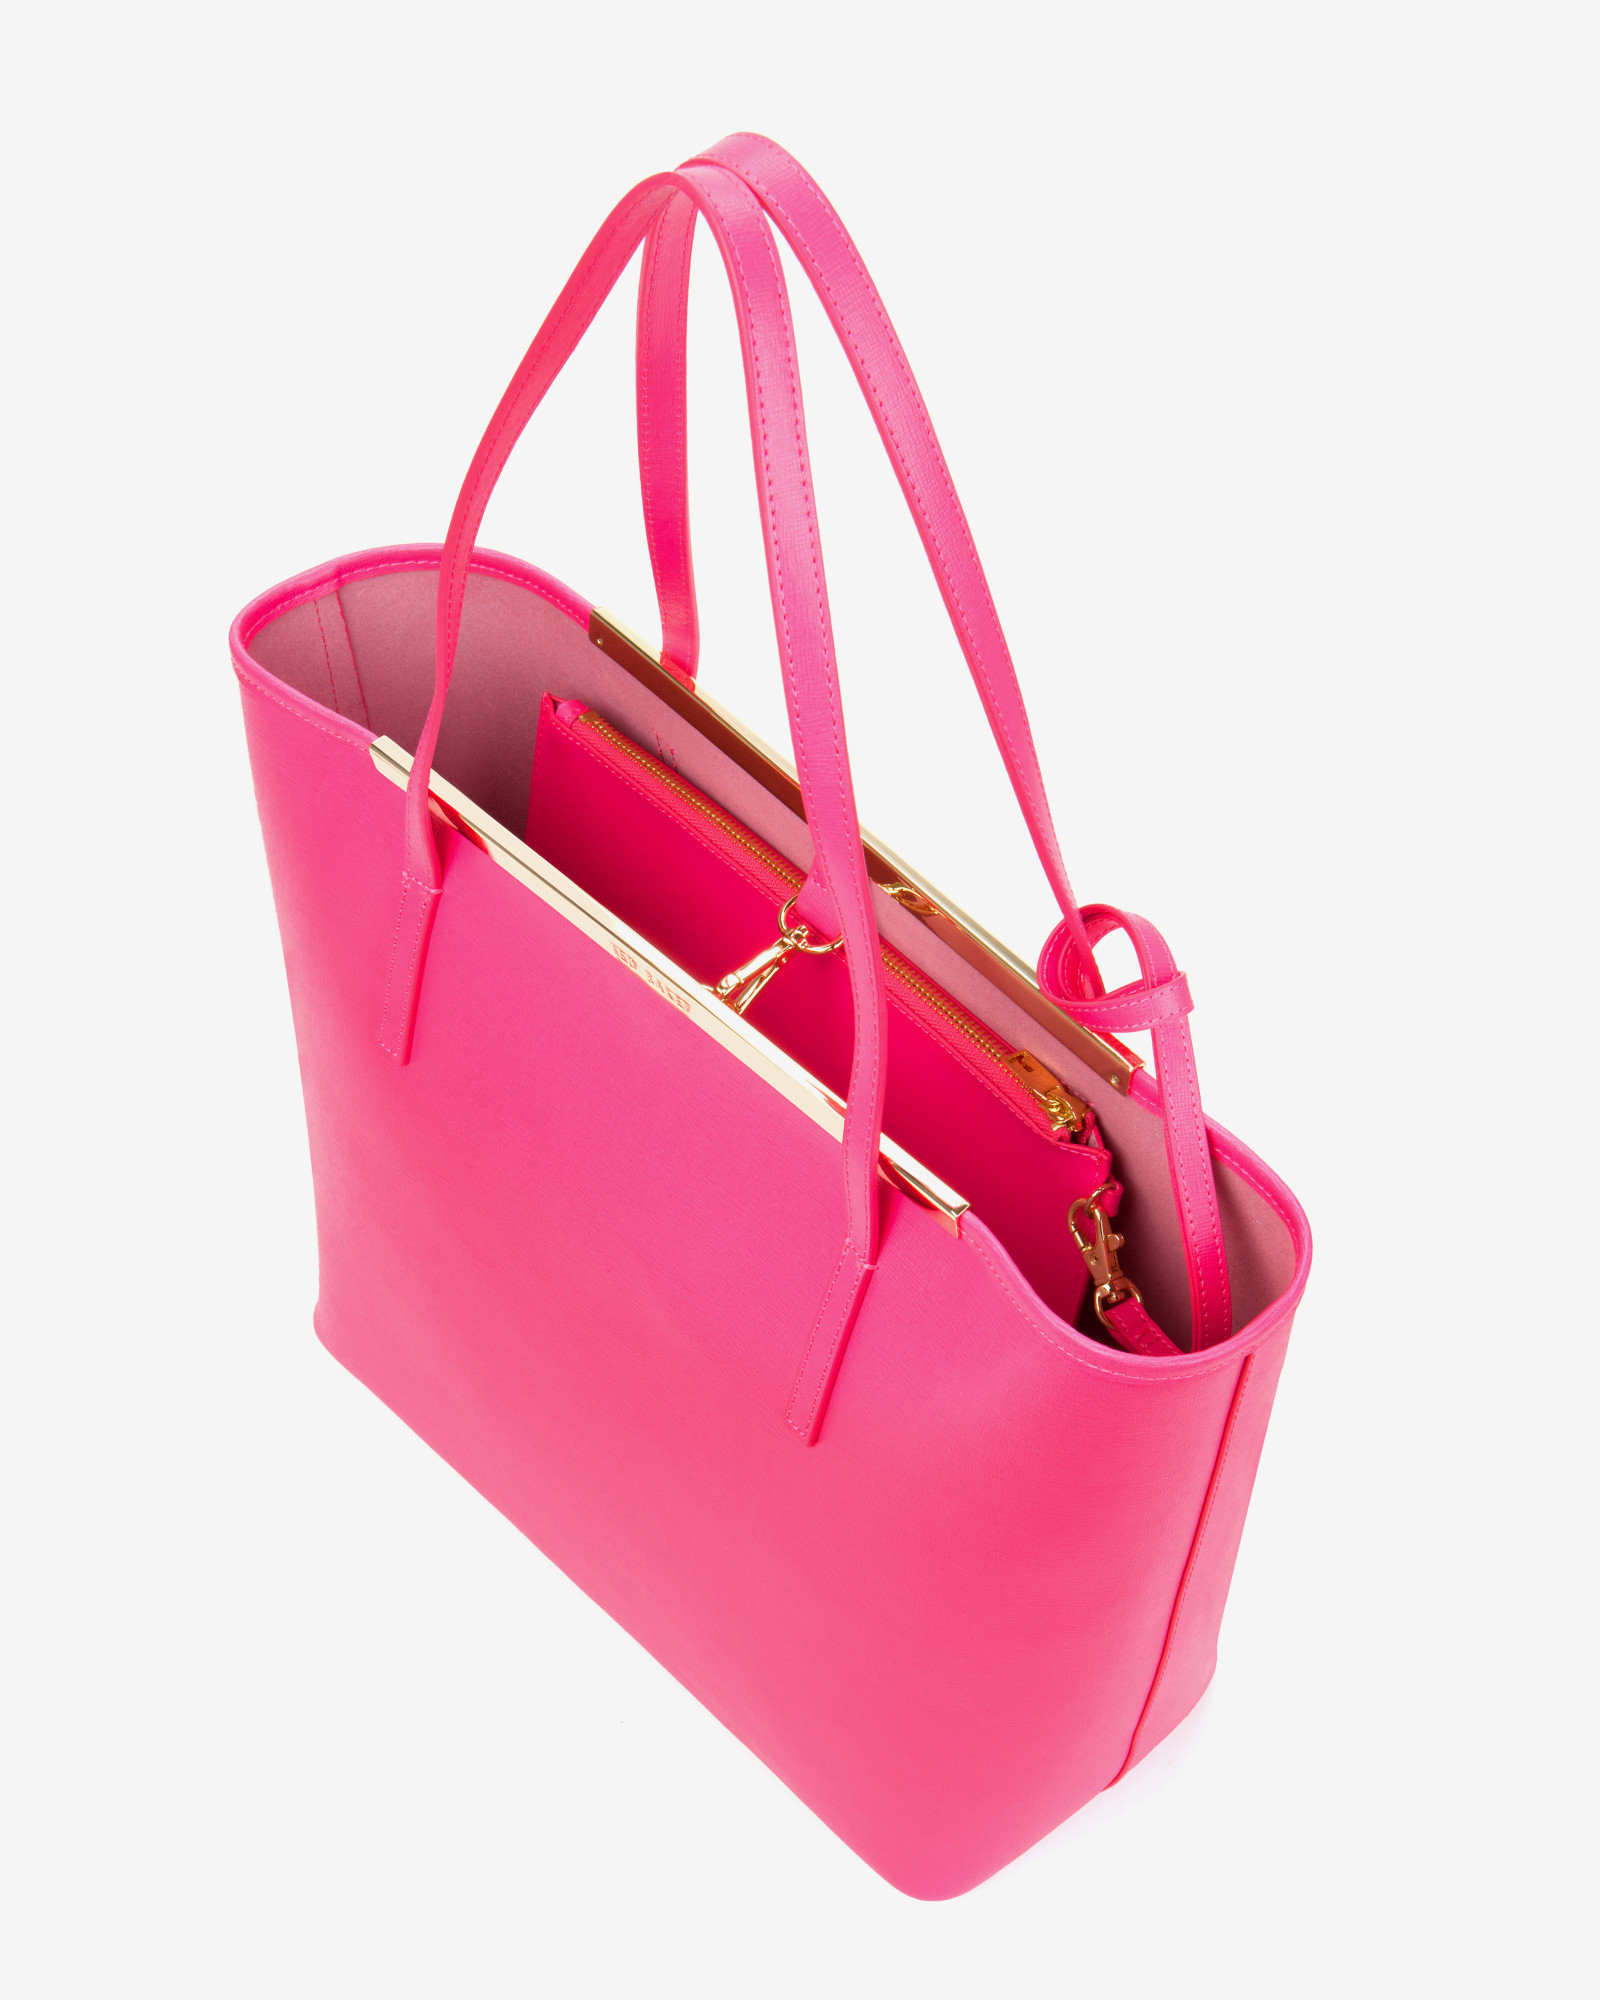 9c268448e67468 Ted Baker Crosshatch Leather Shopper Bag in Pink - Lyst